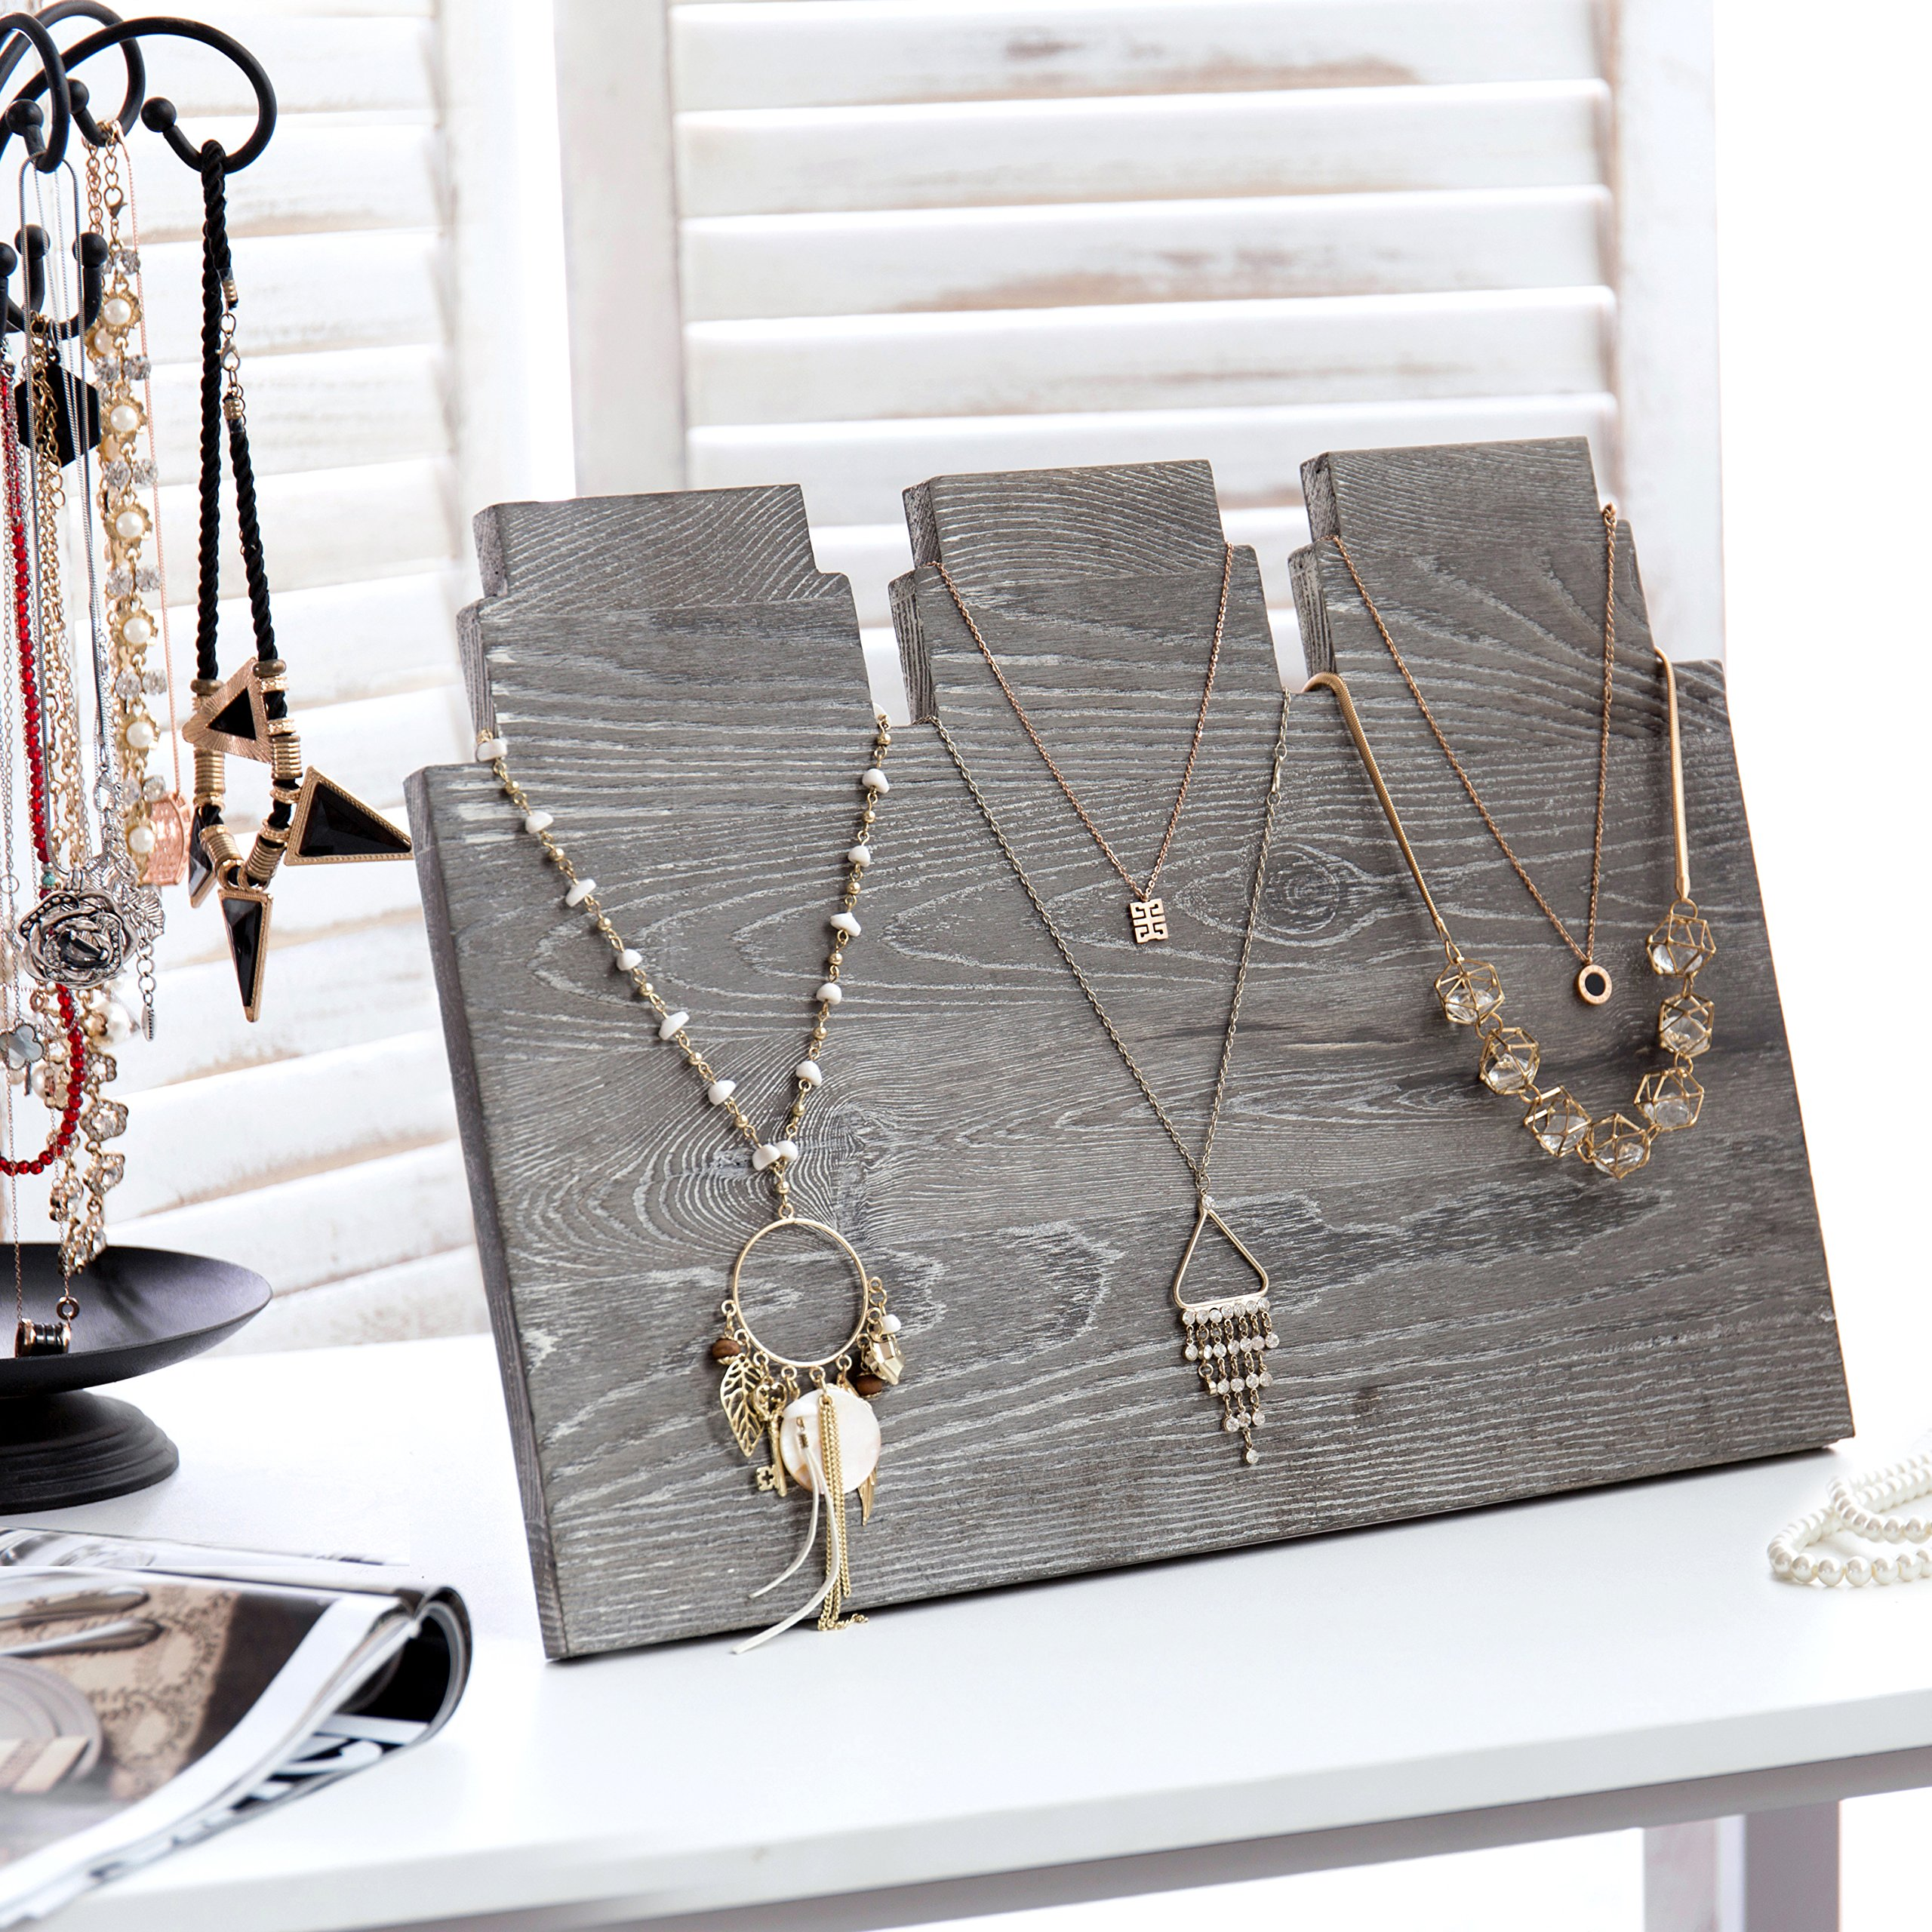 MyGift Distressed Gray Wood Multi-Tiered Necklace Display Stand